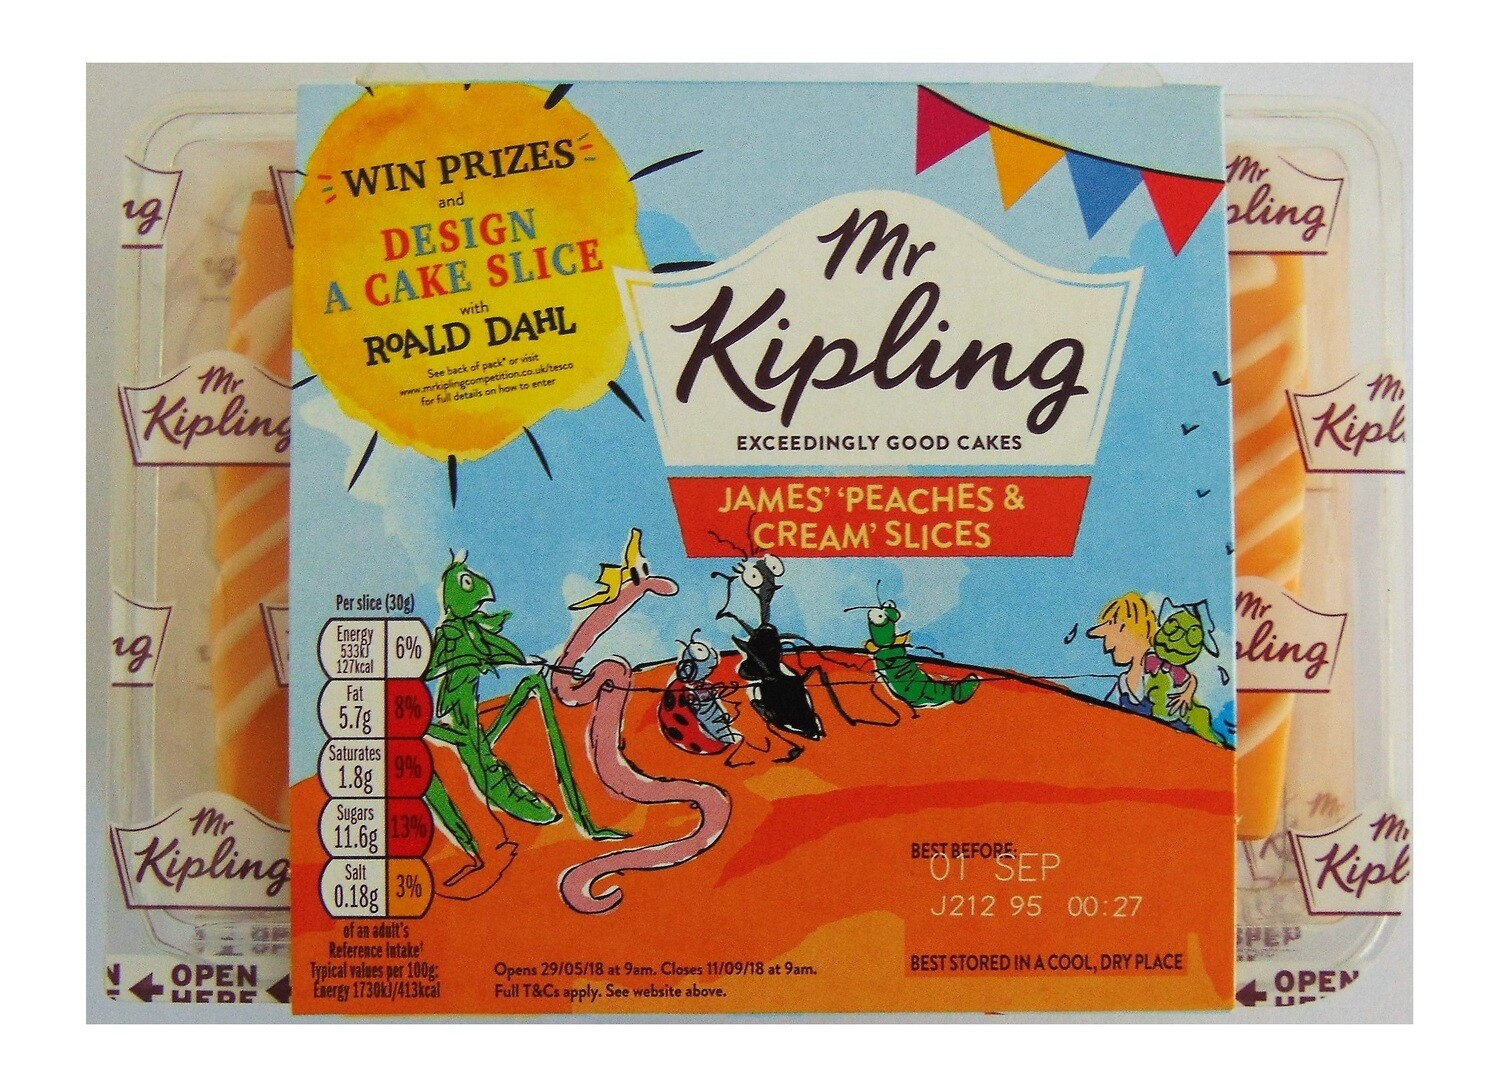 Mr Kipling James' Peaches and Cream Slices